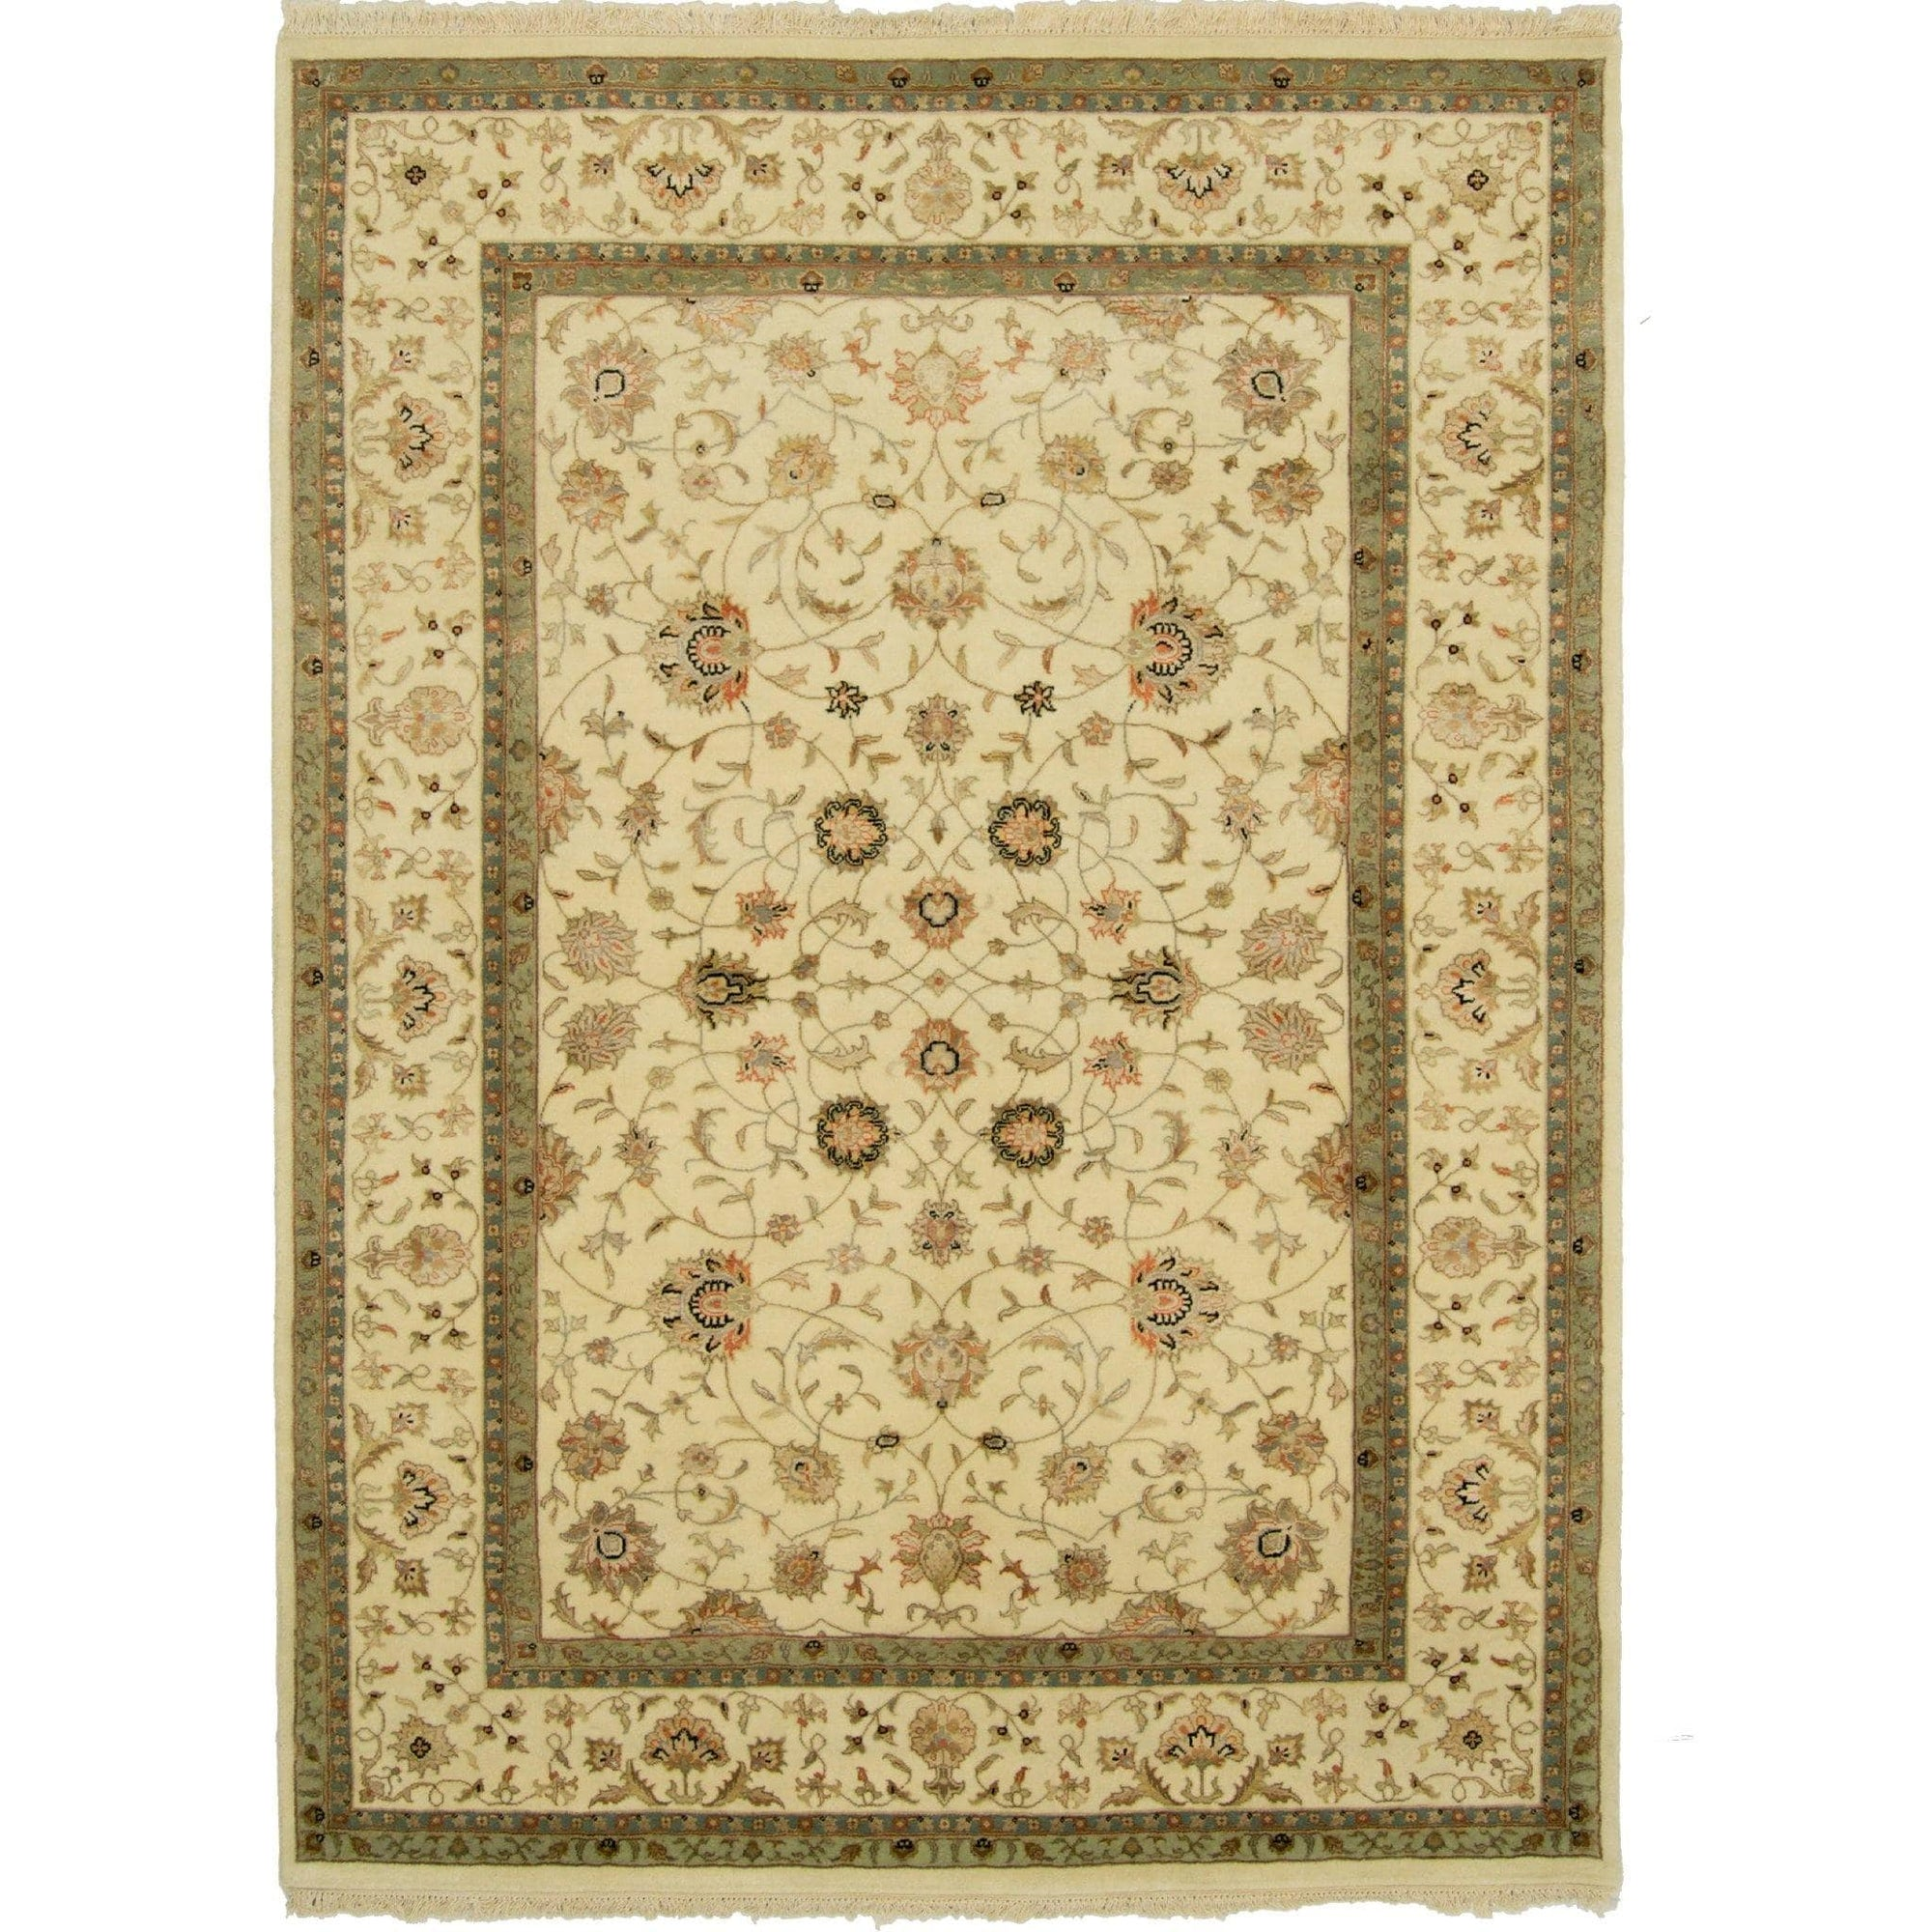 Kashan Persian-Rug | House-of-Haghi | NewMarket | Auckland | NZ | Handmade Persian Rugs | Hand Knotted Persian Rugs